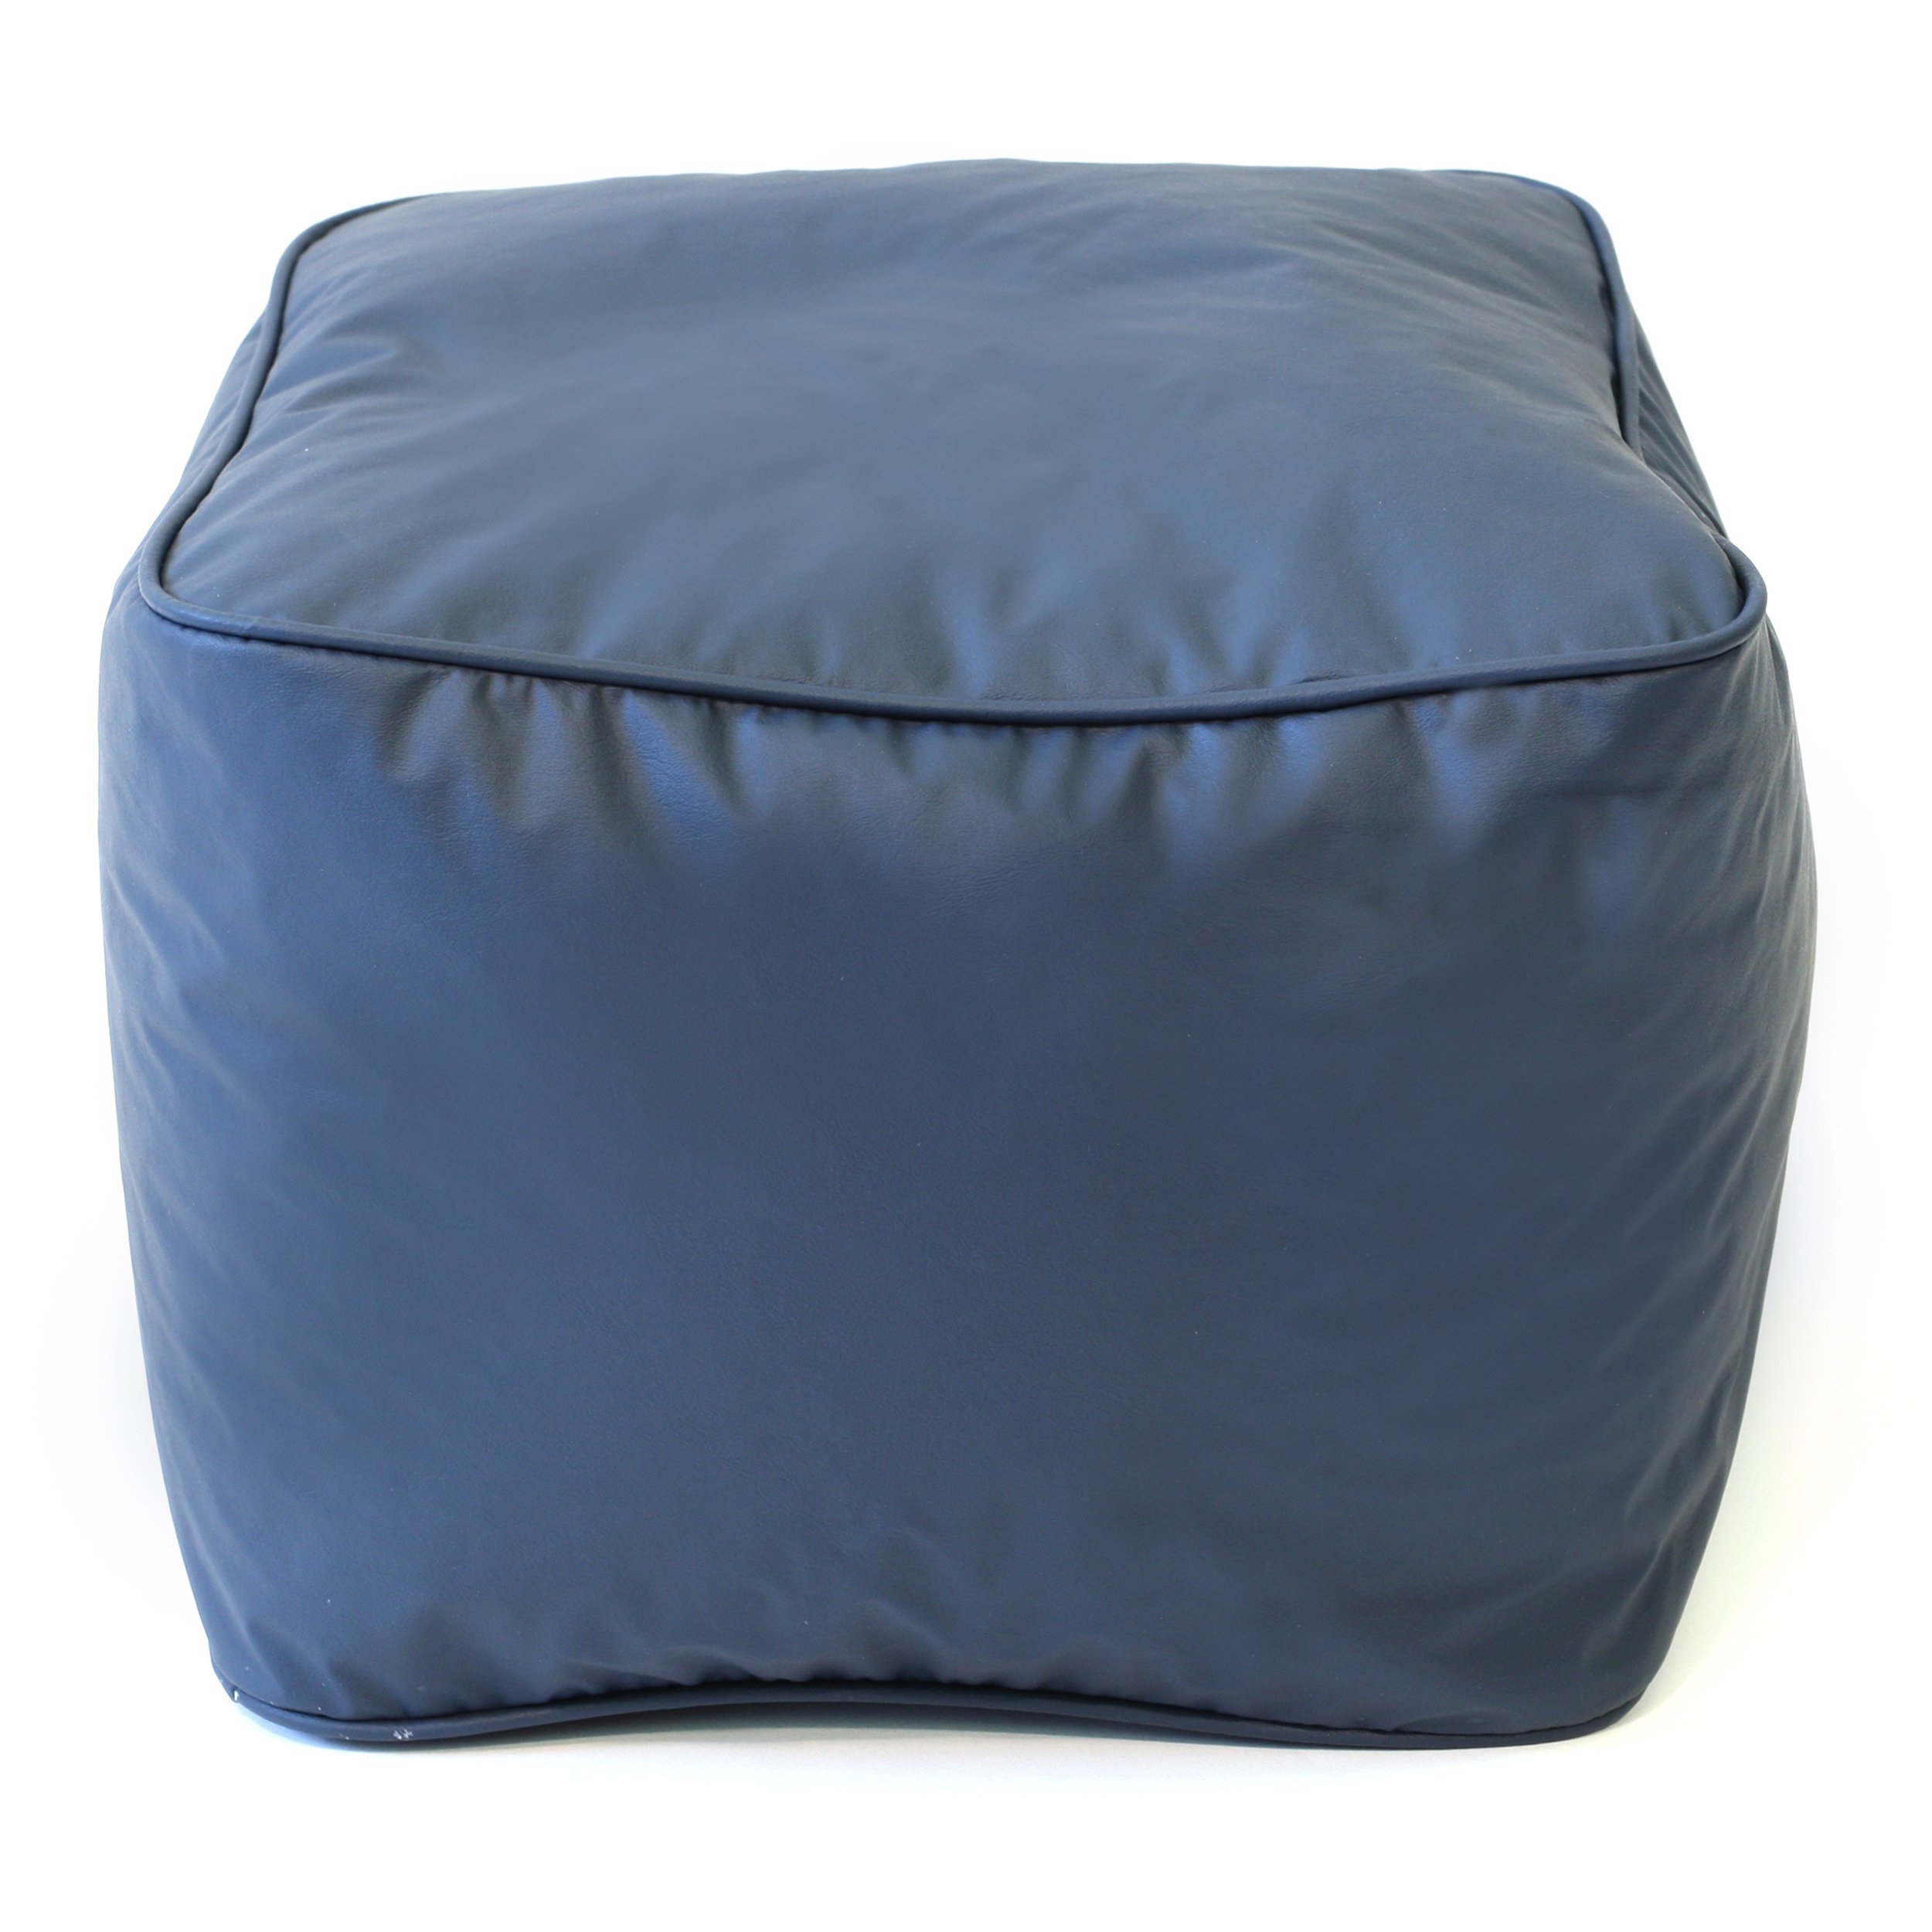 Gold Medal Bean Bags Leather Look Vinyl Ottoman, Small, Navy